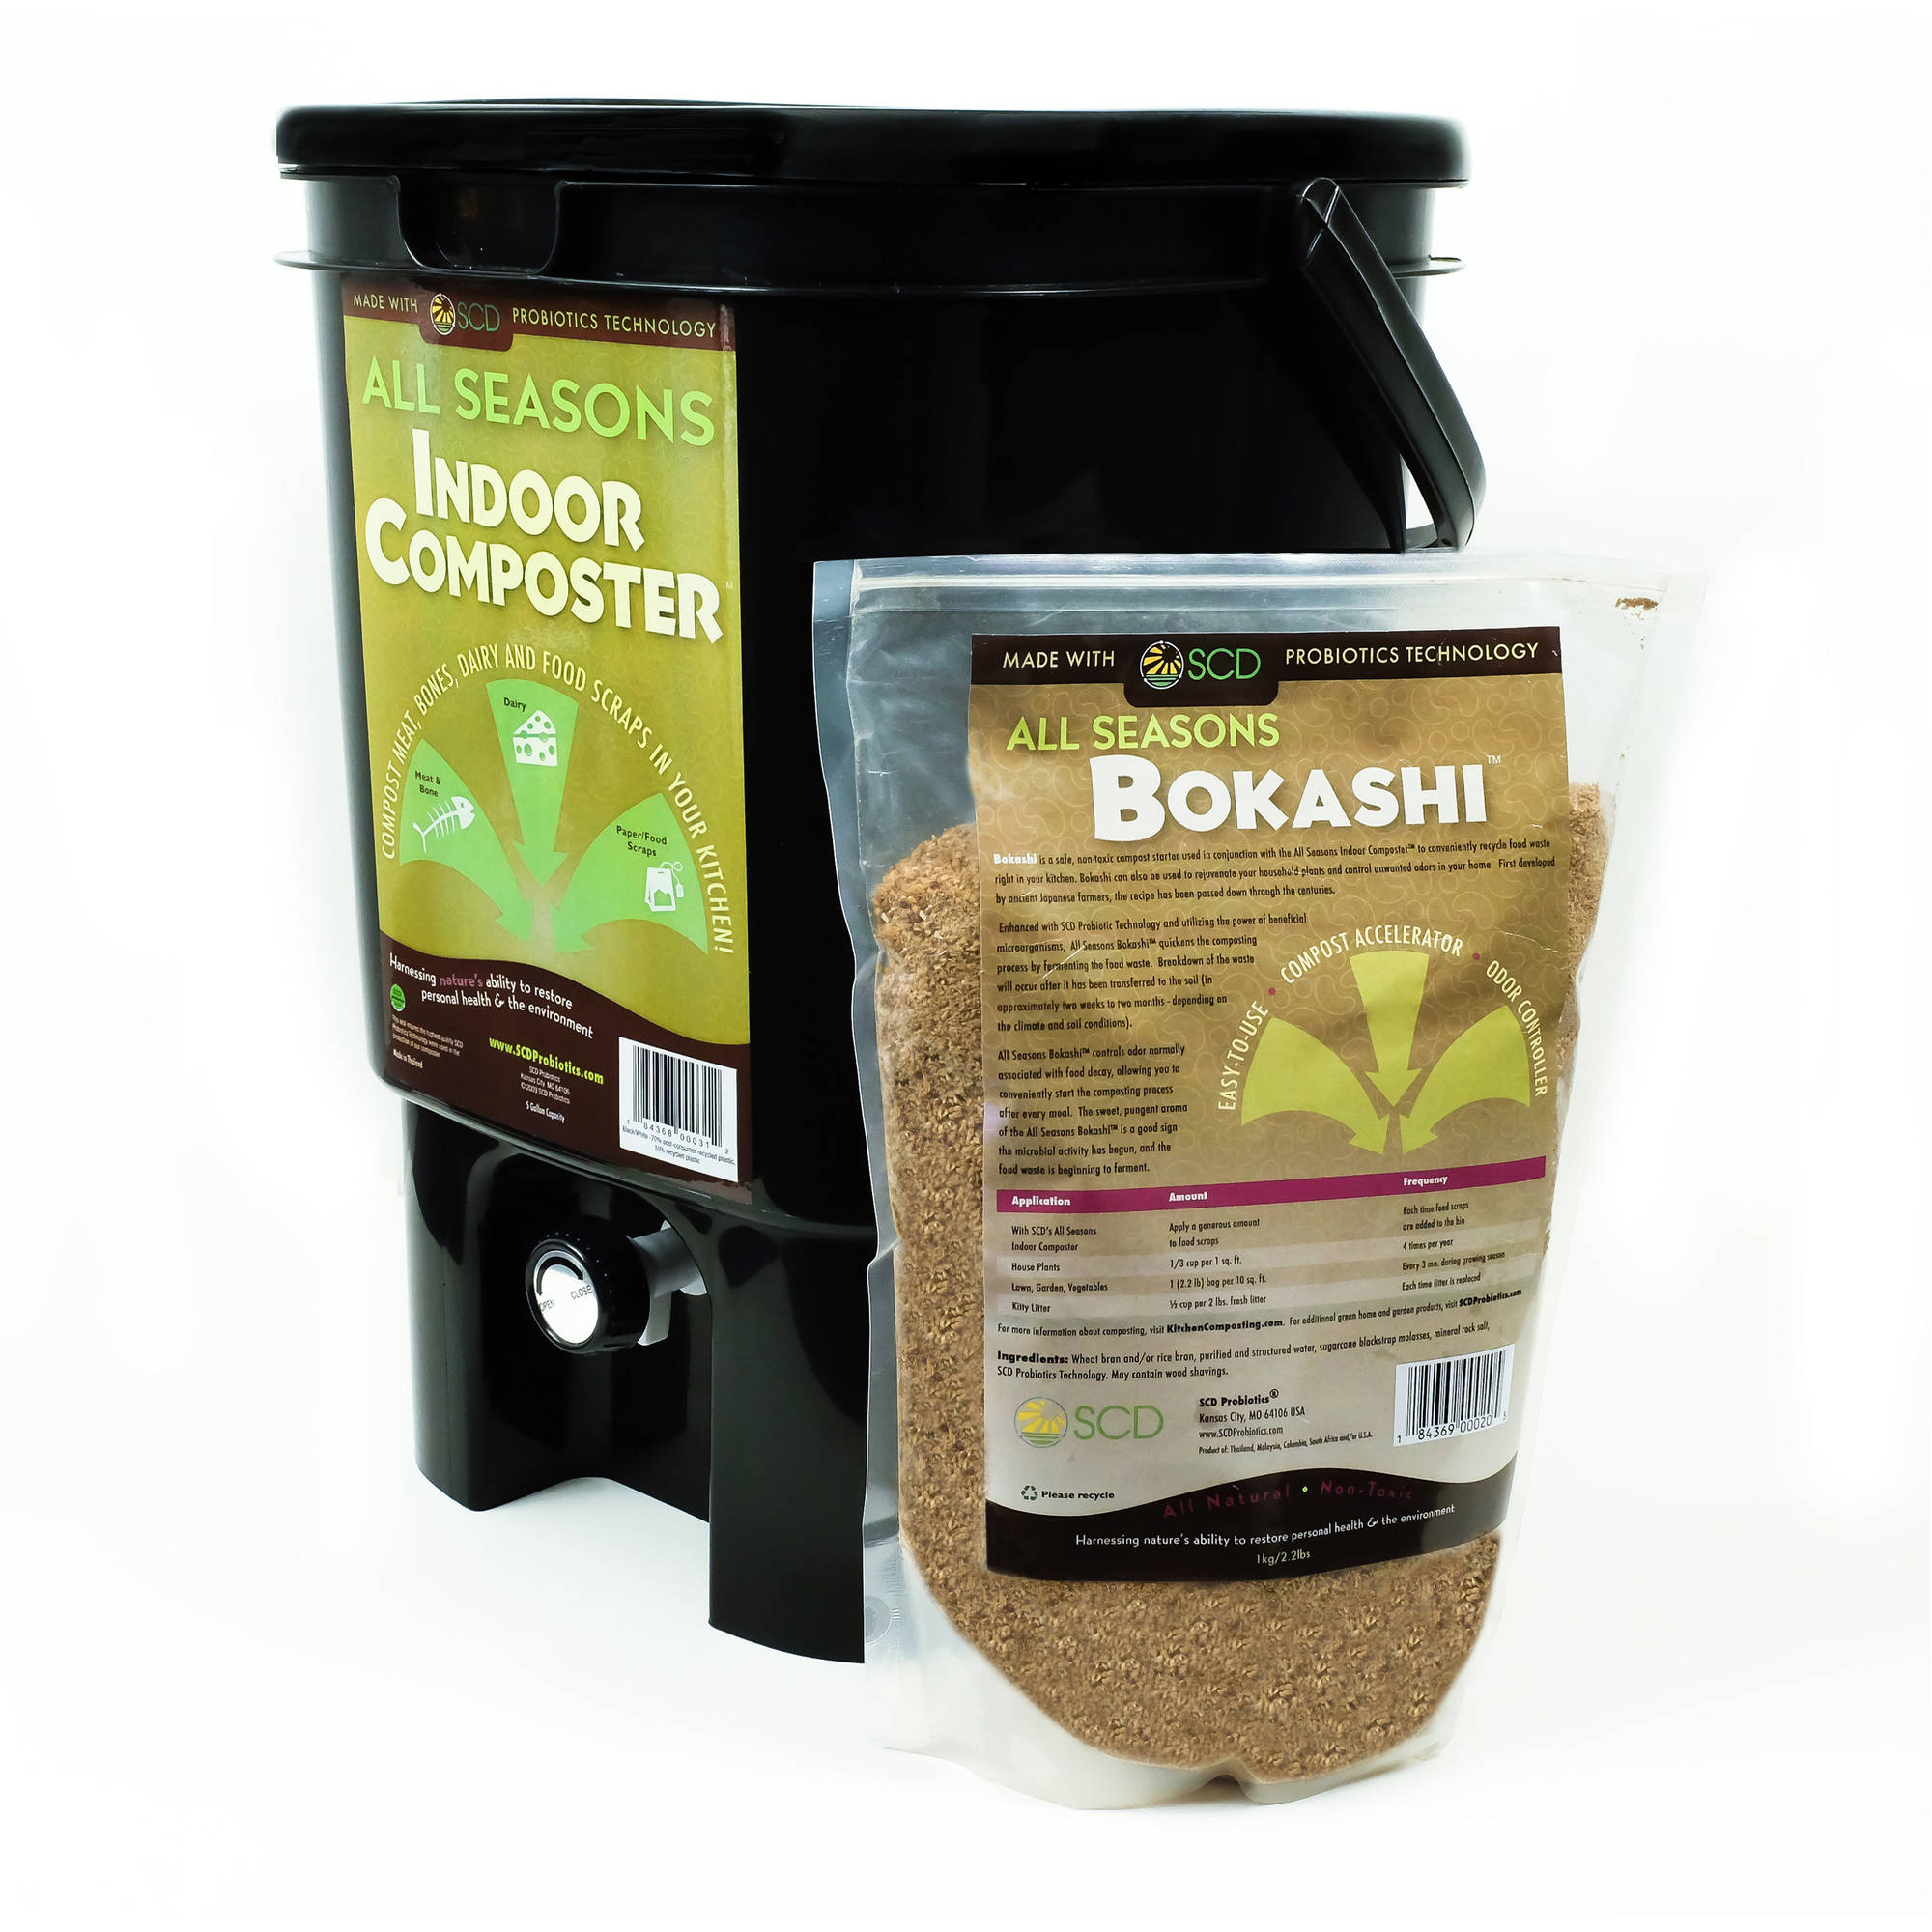 All Seasons Indoor Composter Kit